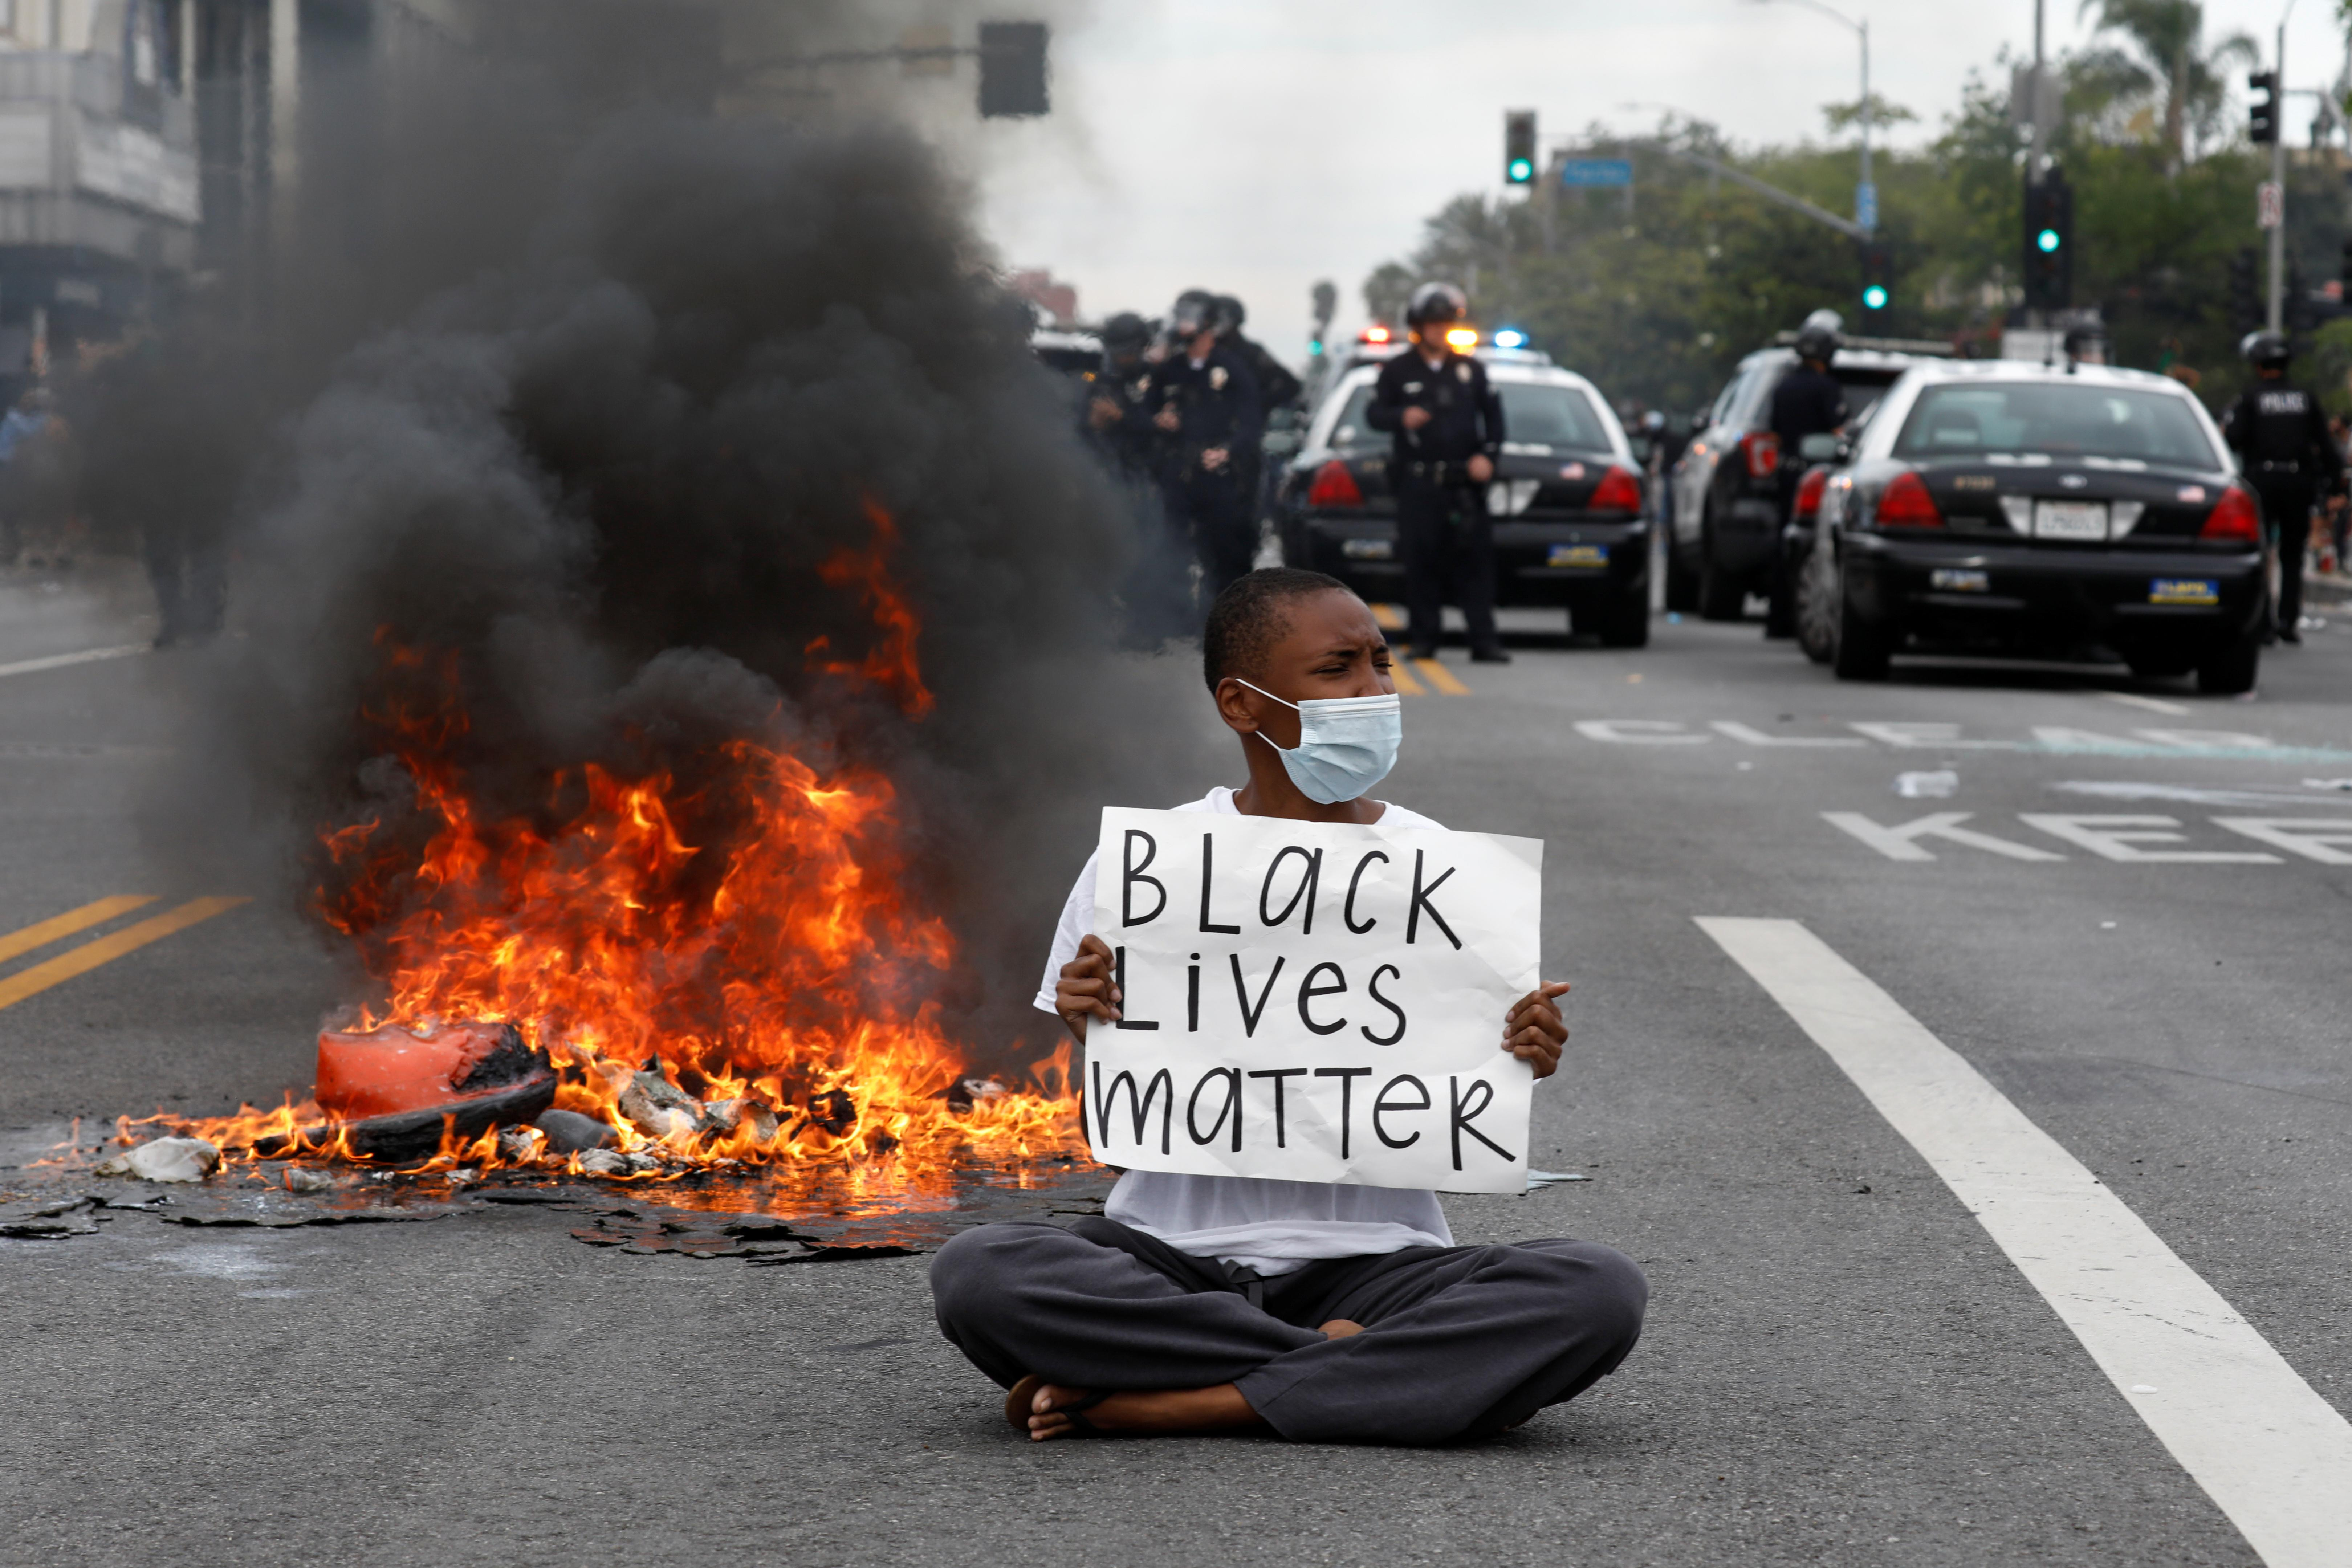 'I can't breathe' protests heat up as curfews imposed in several U.S. cities